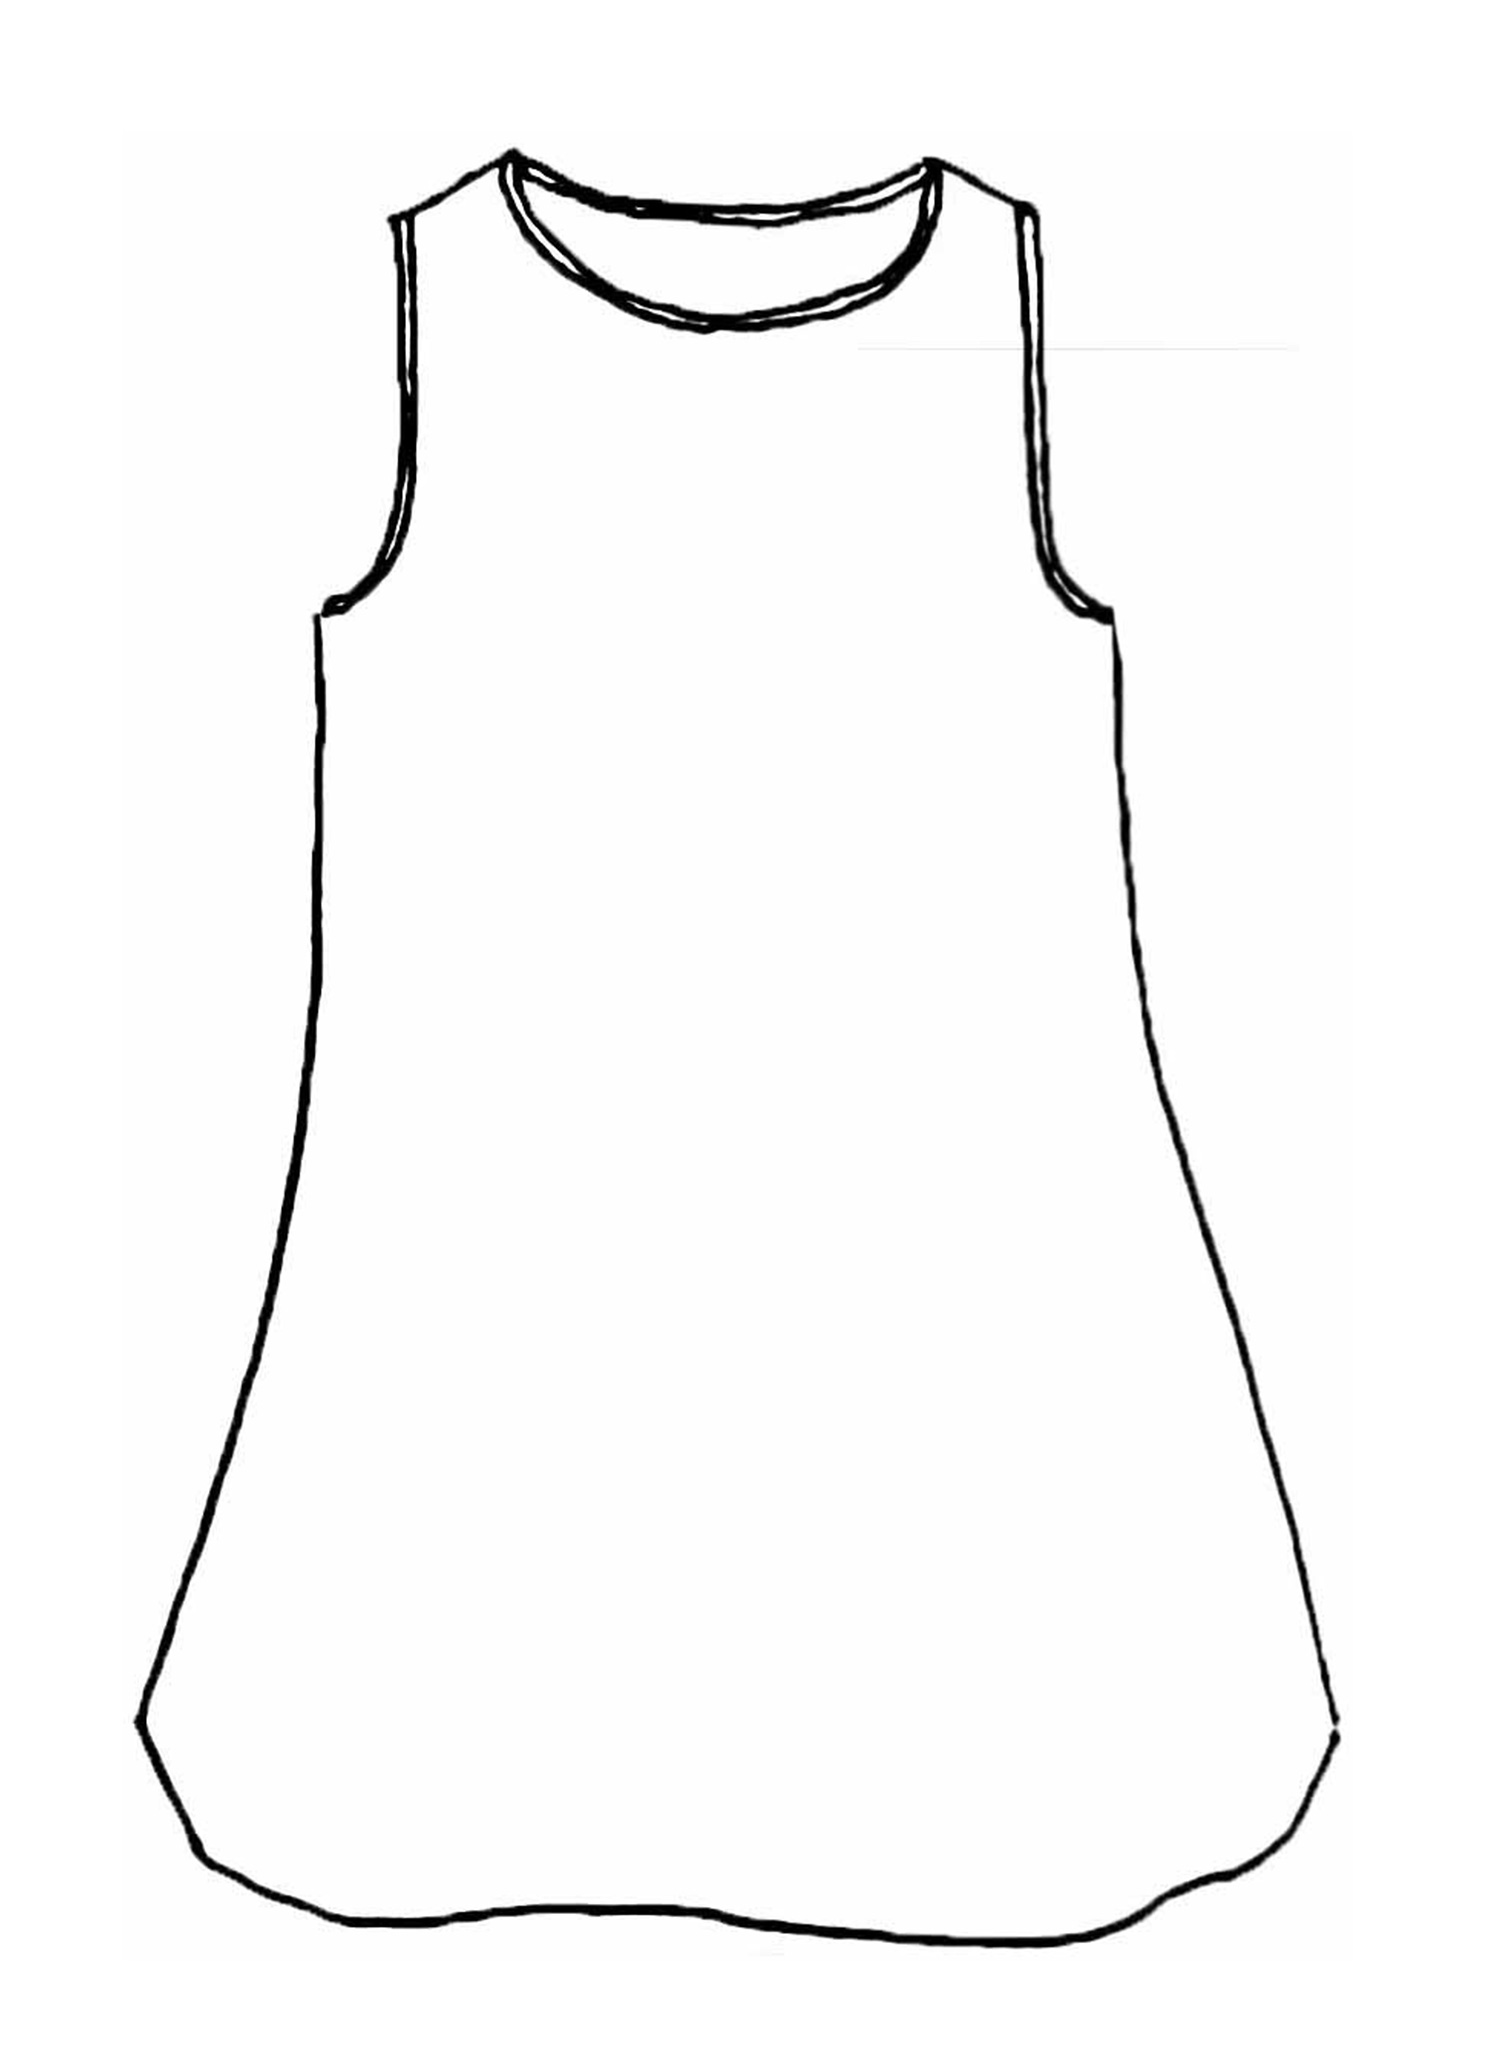 Layer Tunic sketch image